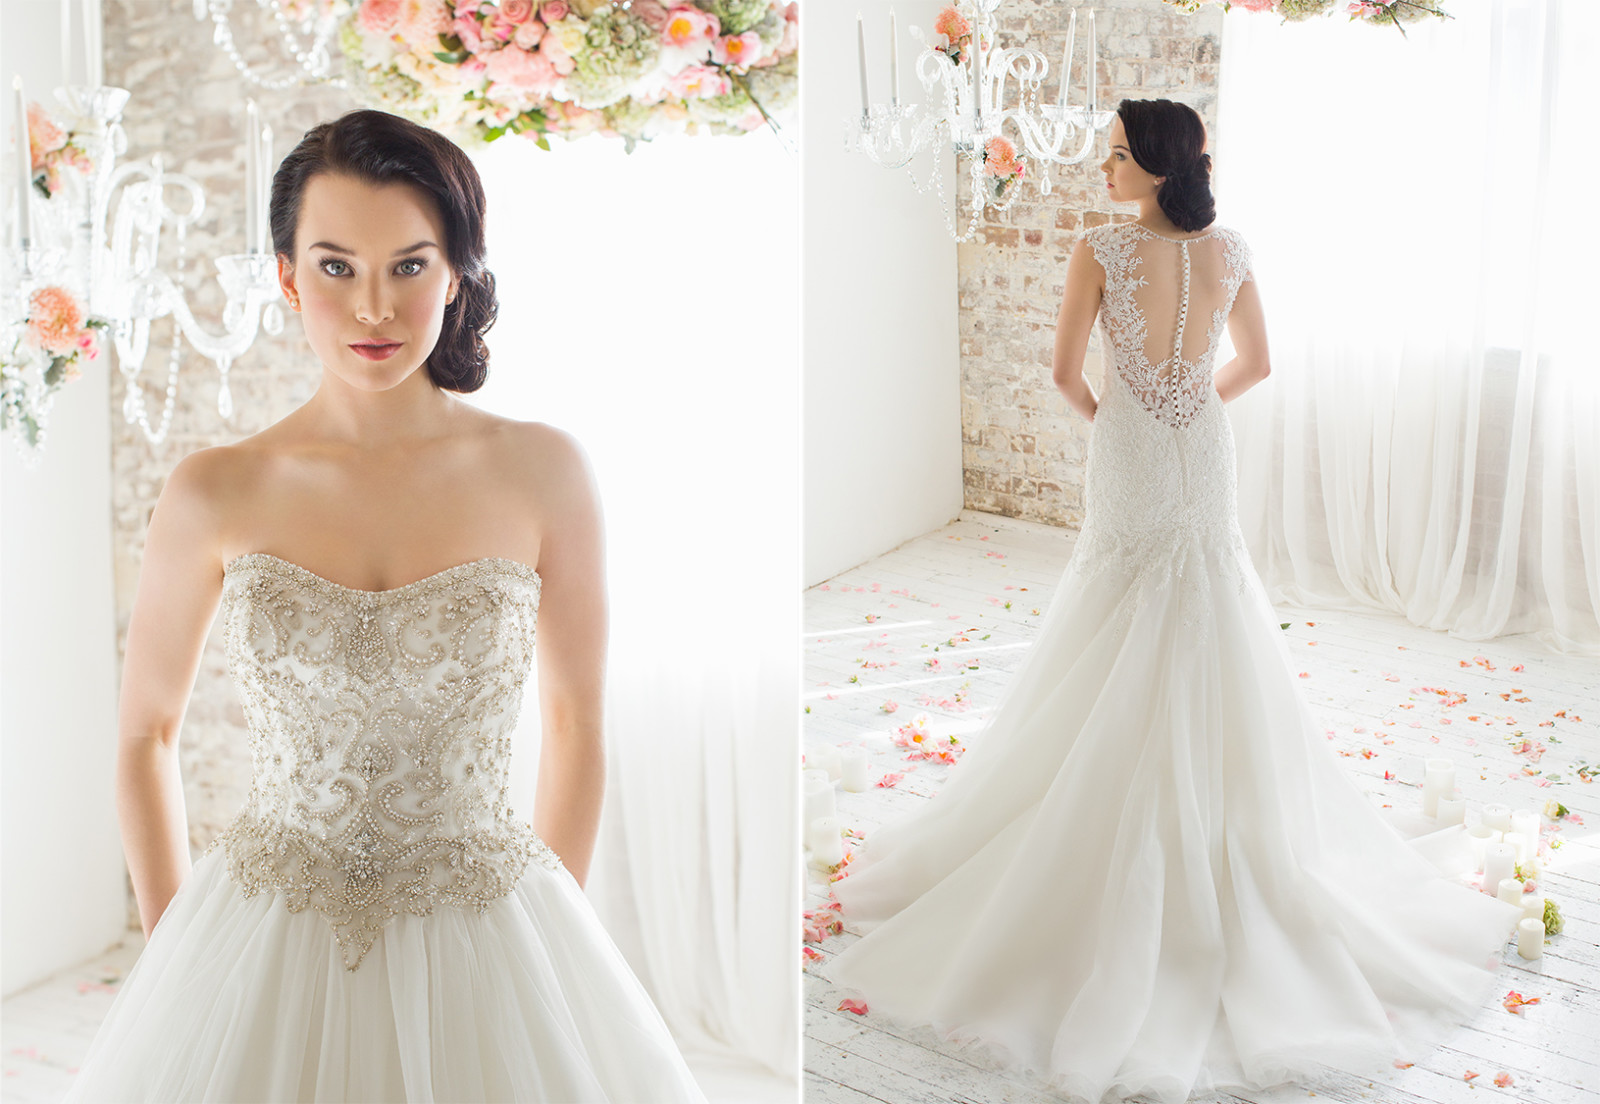 Roz-la-Kelin-2015-Collection-Diamond-bride-Love-Note-Photo